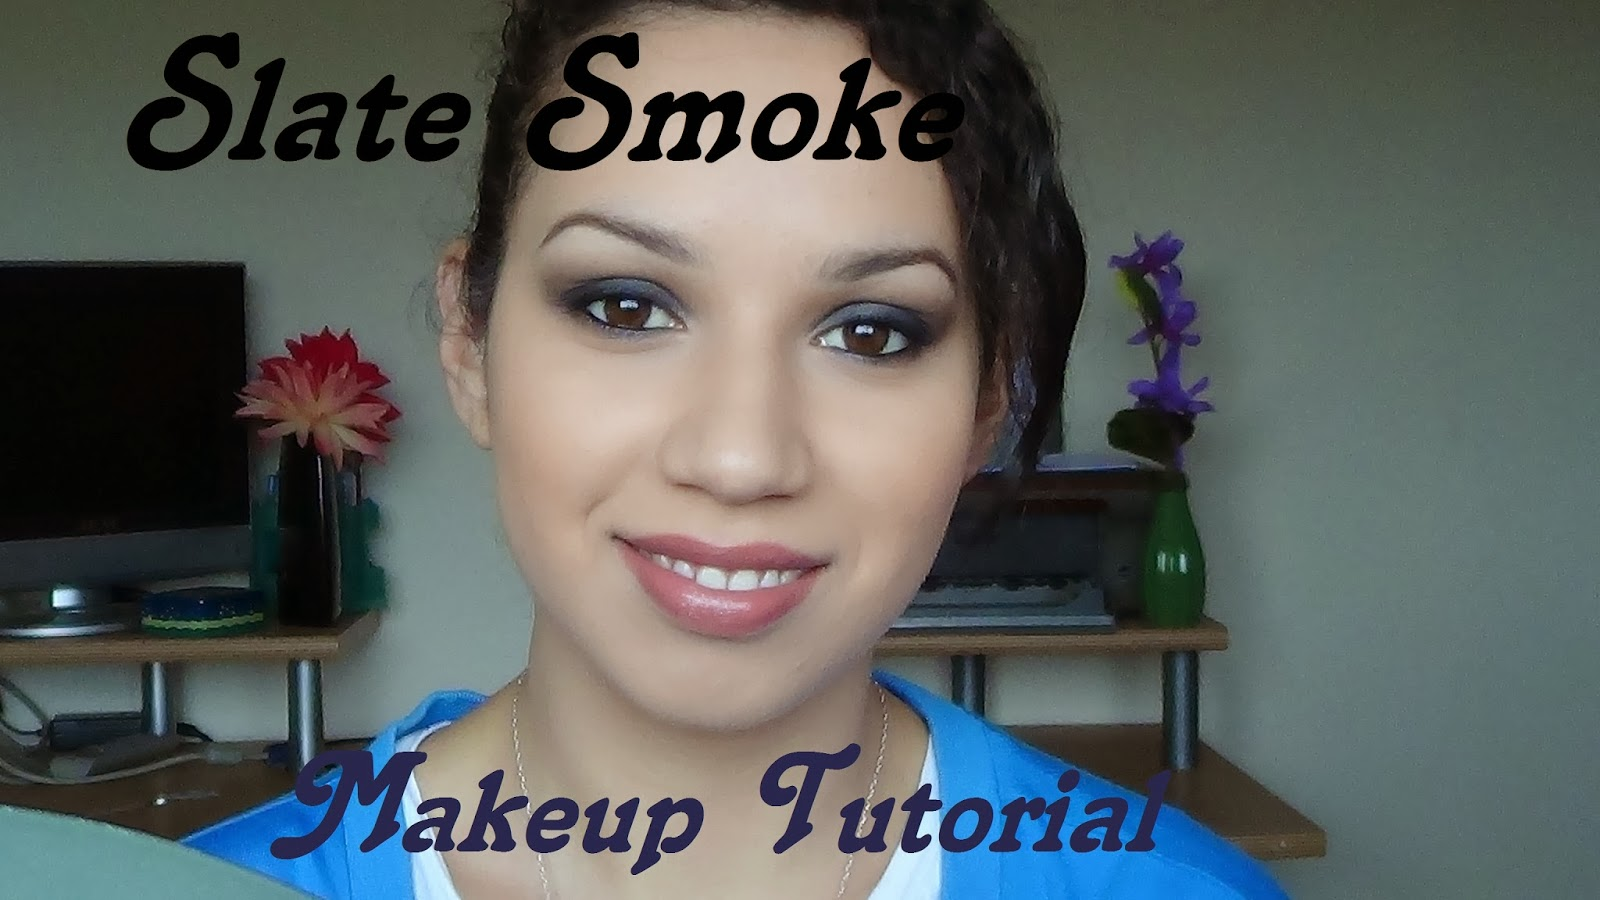 'Slate Smoke' smokey-eyes & full face tutorial